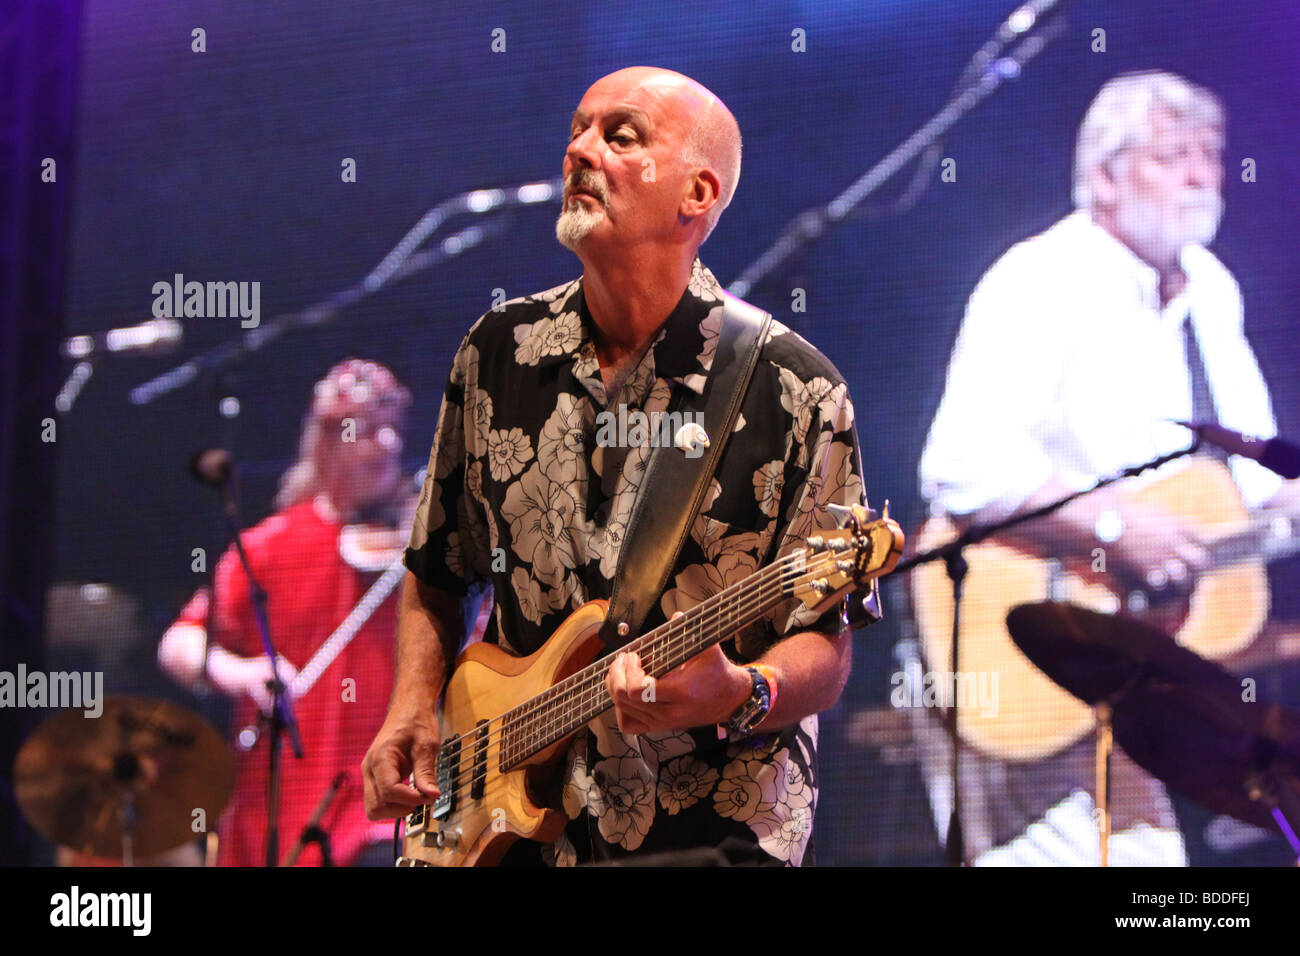 Dave Pegg with Ric Sanders and Simon Nicol at Fairport Conventions Cropredy Festival 15th August 2009 - Stock Image